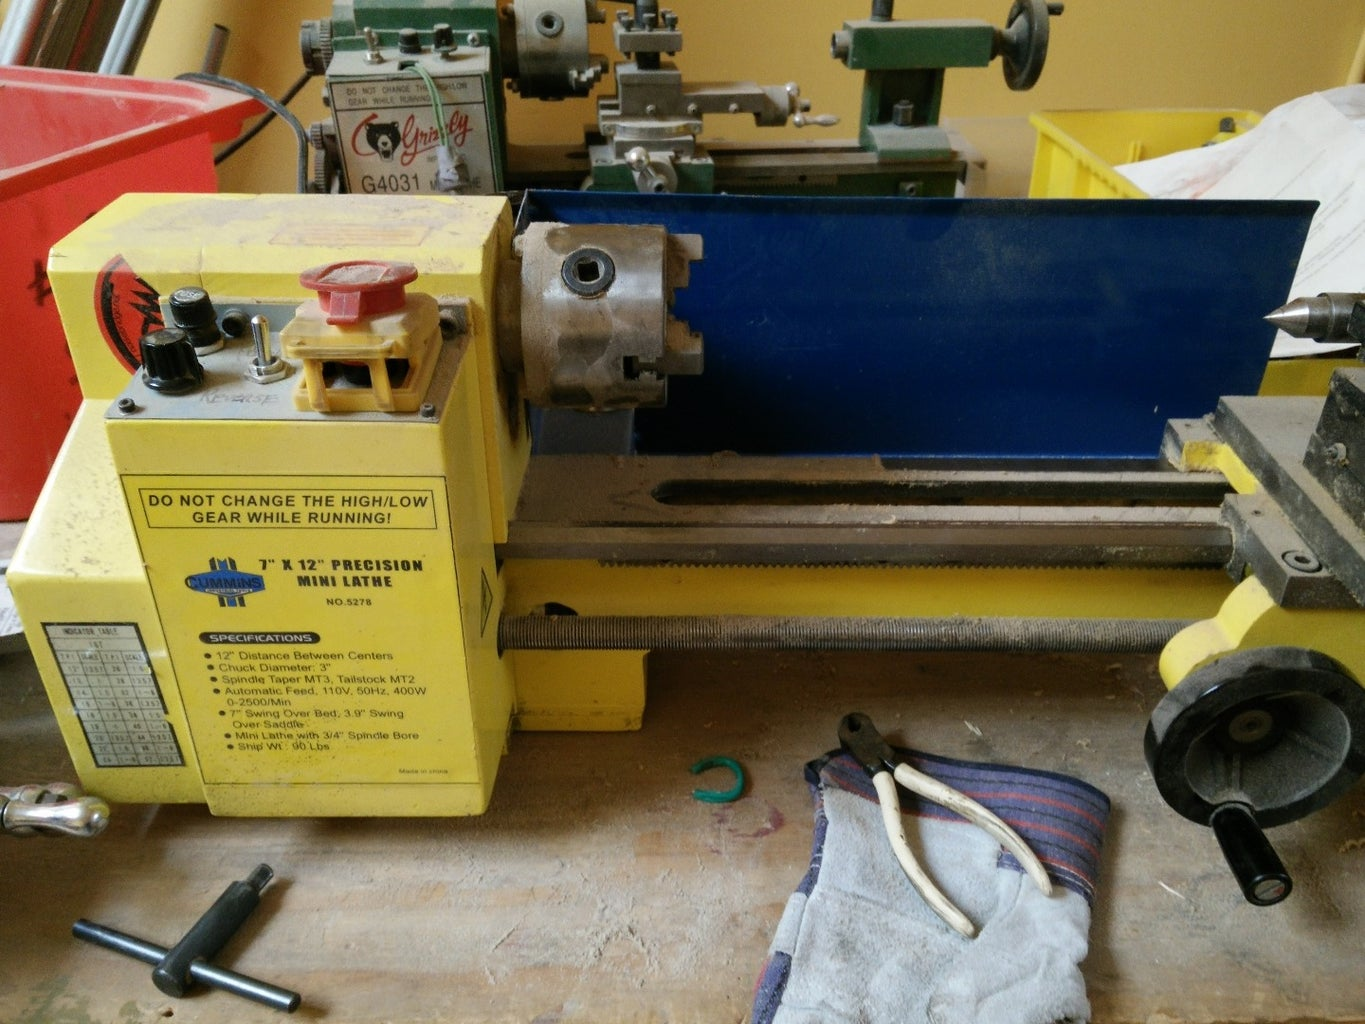 Quick Lathe Safety Instructions (that Are in No Way a Substitute for Actual Lathe Training)